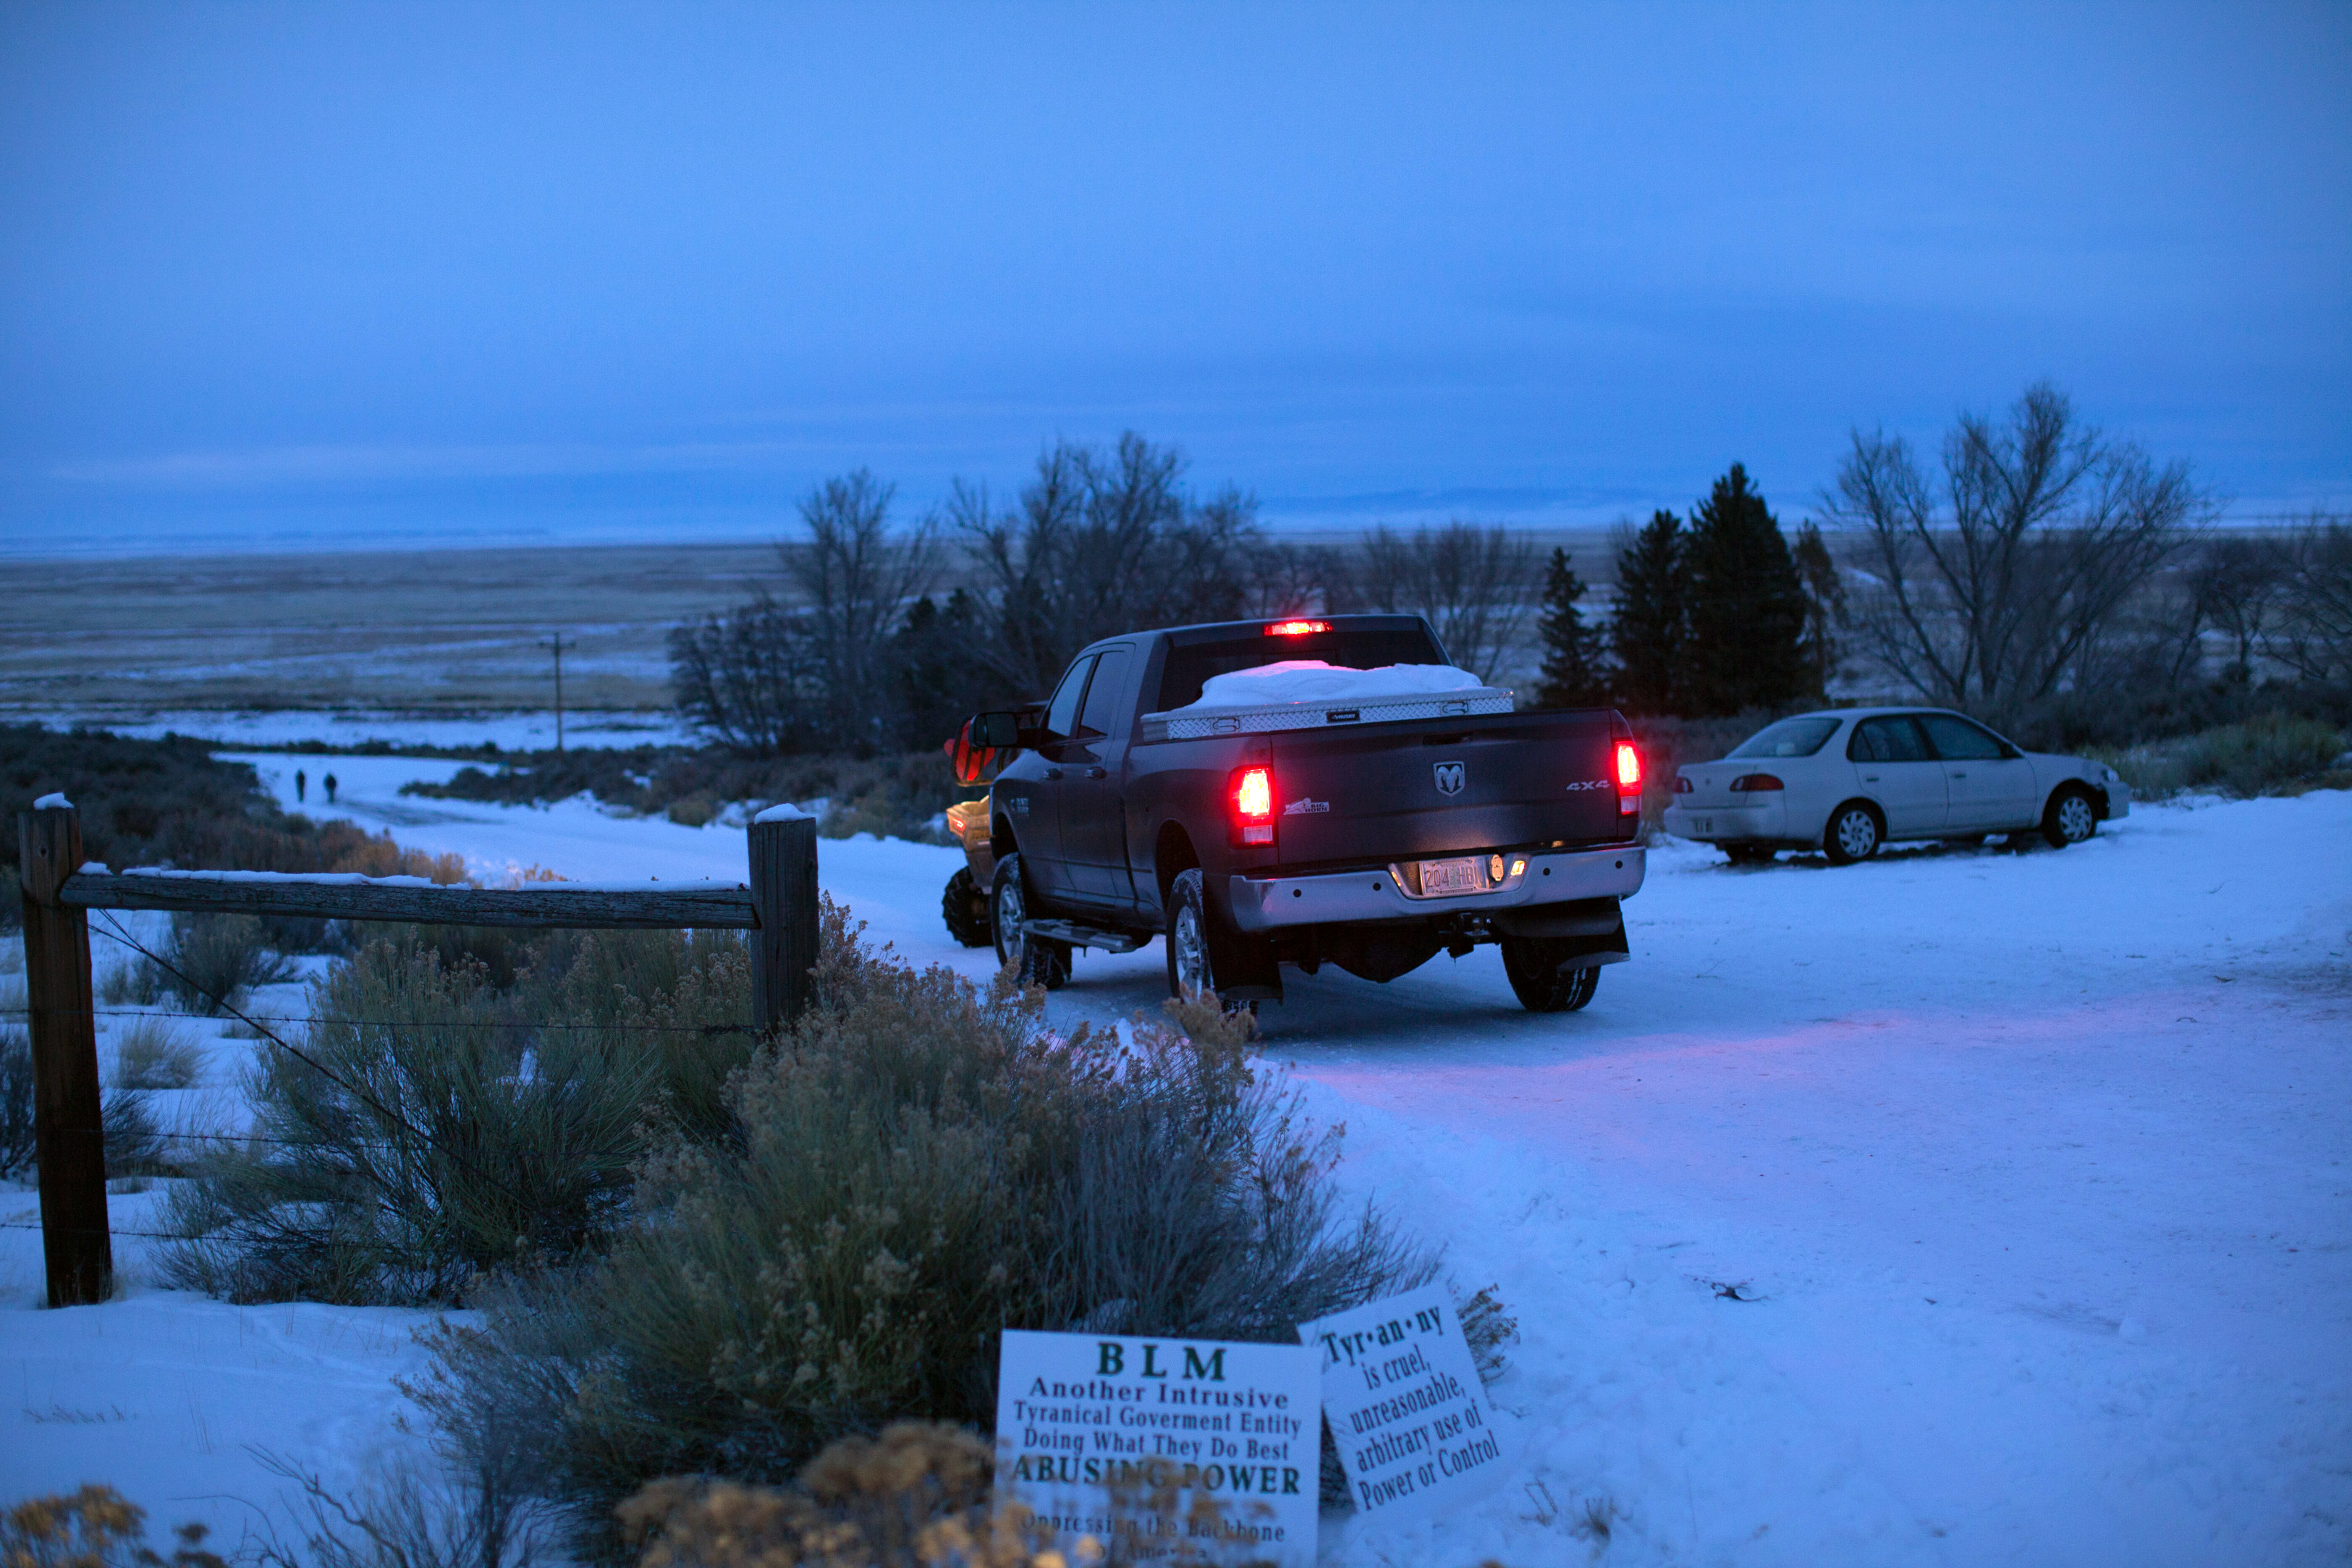 A vehicle occupied by members of a small militia group enter the Malheur Wildlife Refuge Headquarters property some 30 miles from Burns, Oregon, January 3, 2016.  The armed anti-government group have taken over a building at the federal wildlife refuge, accusing officials of unfairly punishing ranchers who refused to sell their land. The standoff has prompted some schools to call off classes for the entire week.